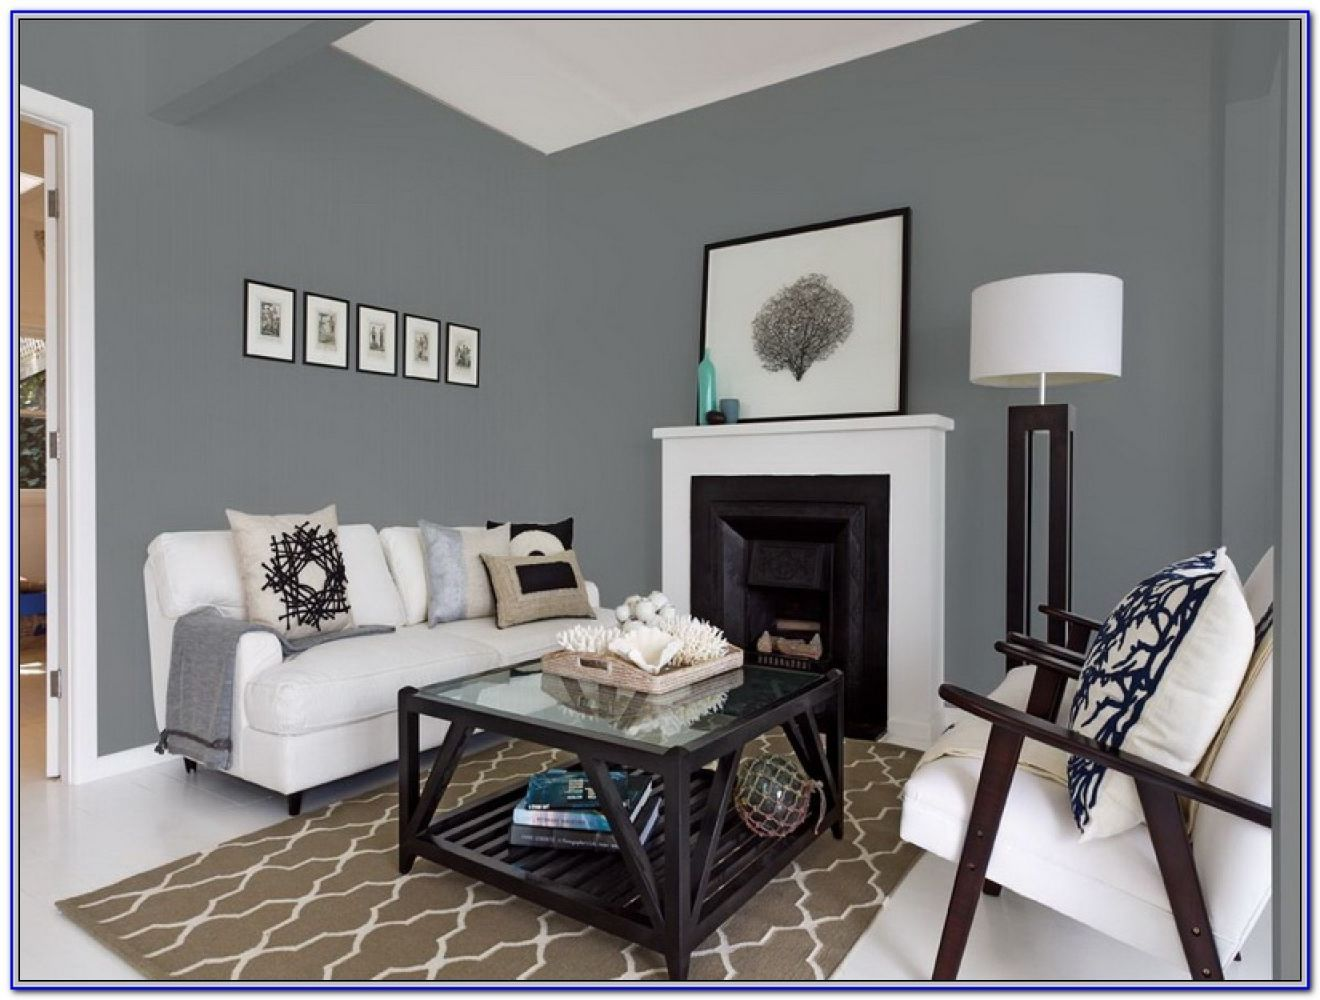 New What Color Curtains Go With Gray Walls Grey Walls Living Room Living Room Wall Color Living Room Color